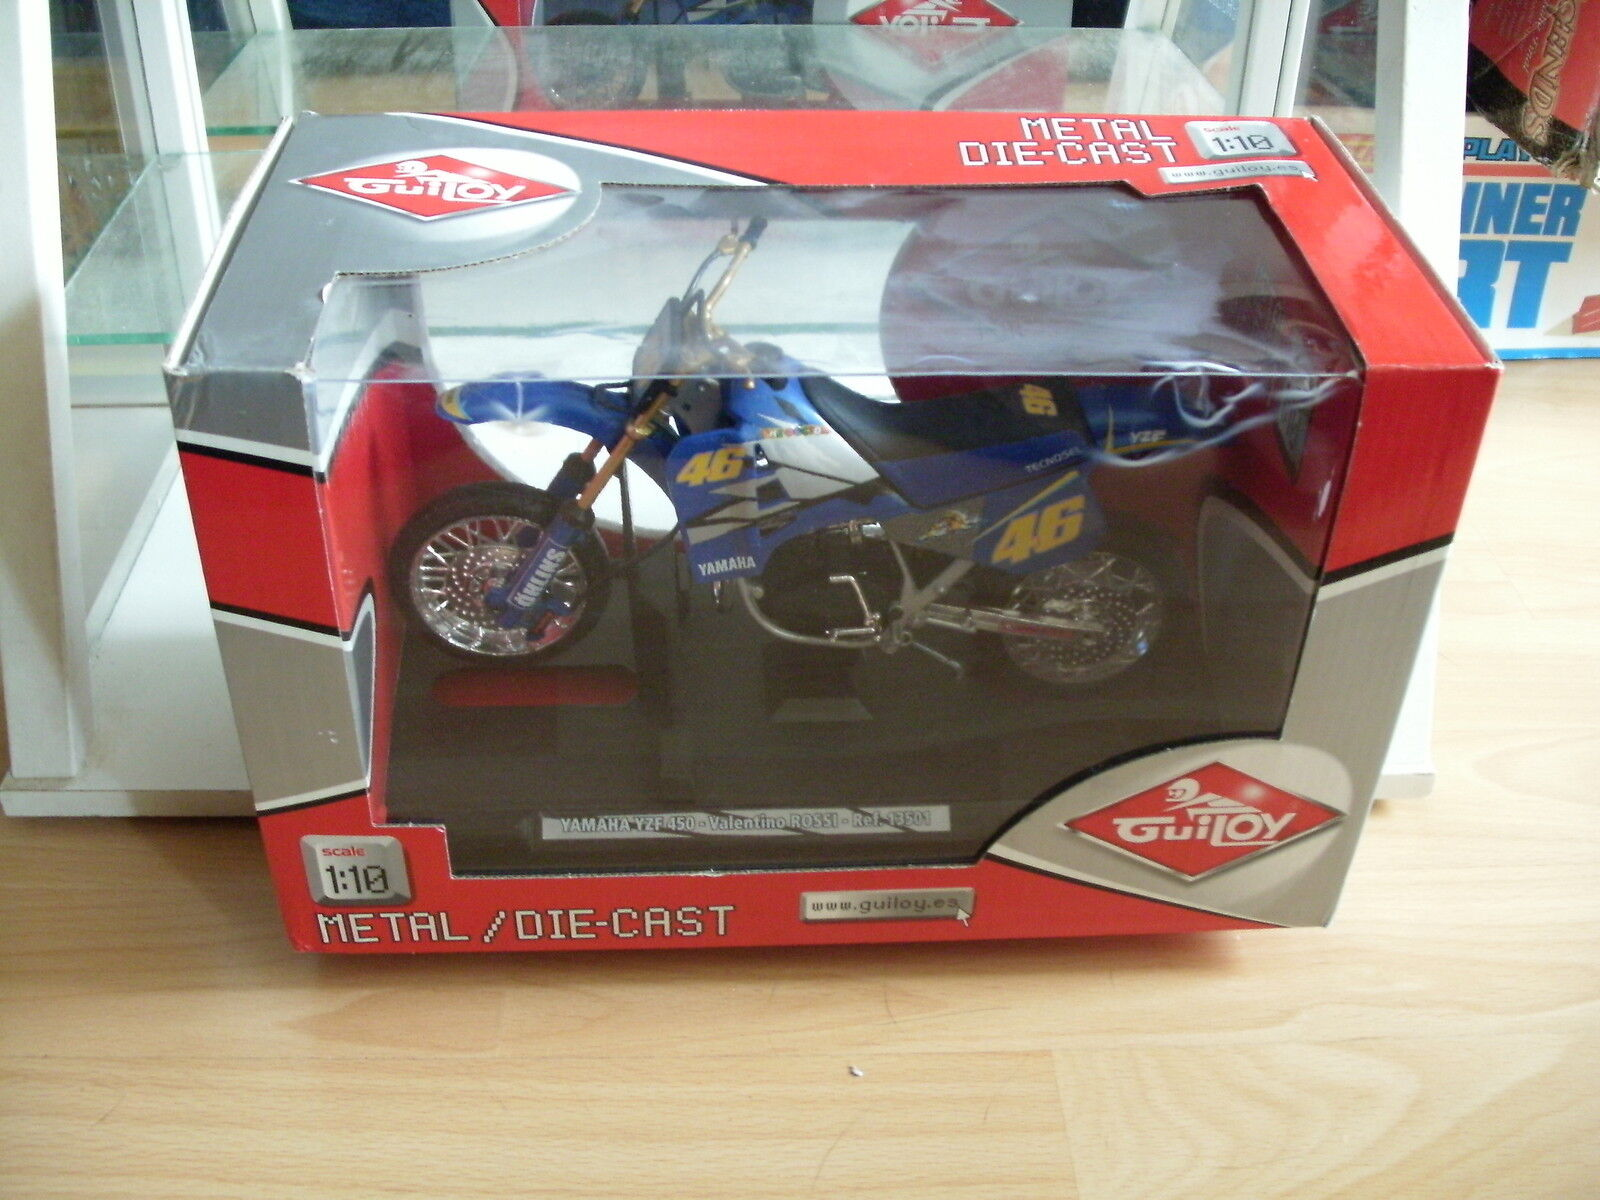 Guiloy Yamaha YZF 450 Valentino Rossi  46 in blu on 1 10 in Box